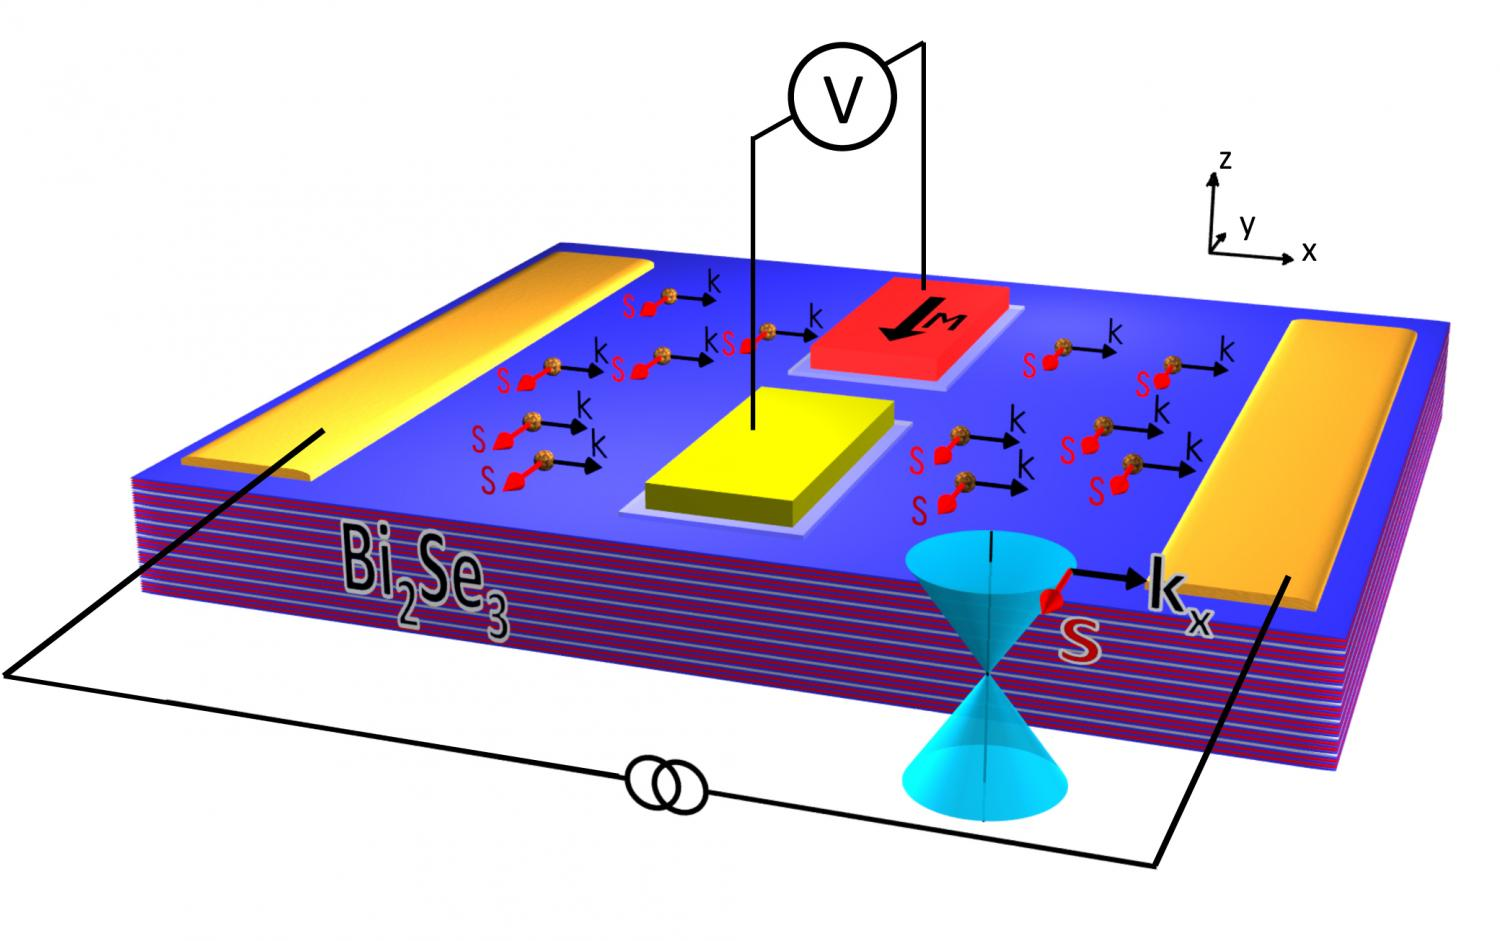 nrl detects opposite spin in topological insulator surface states